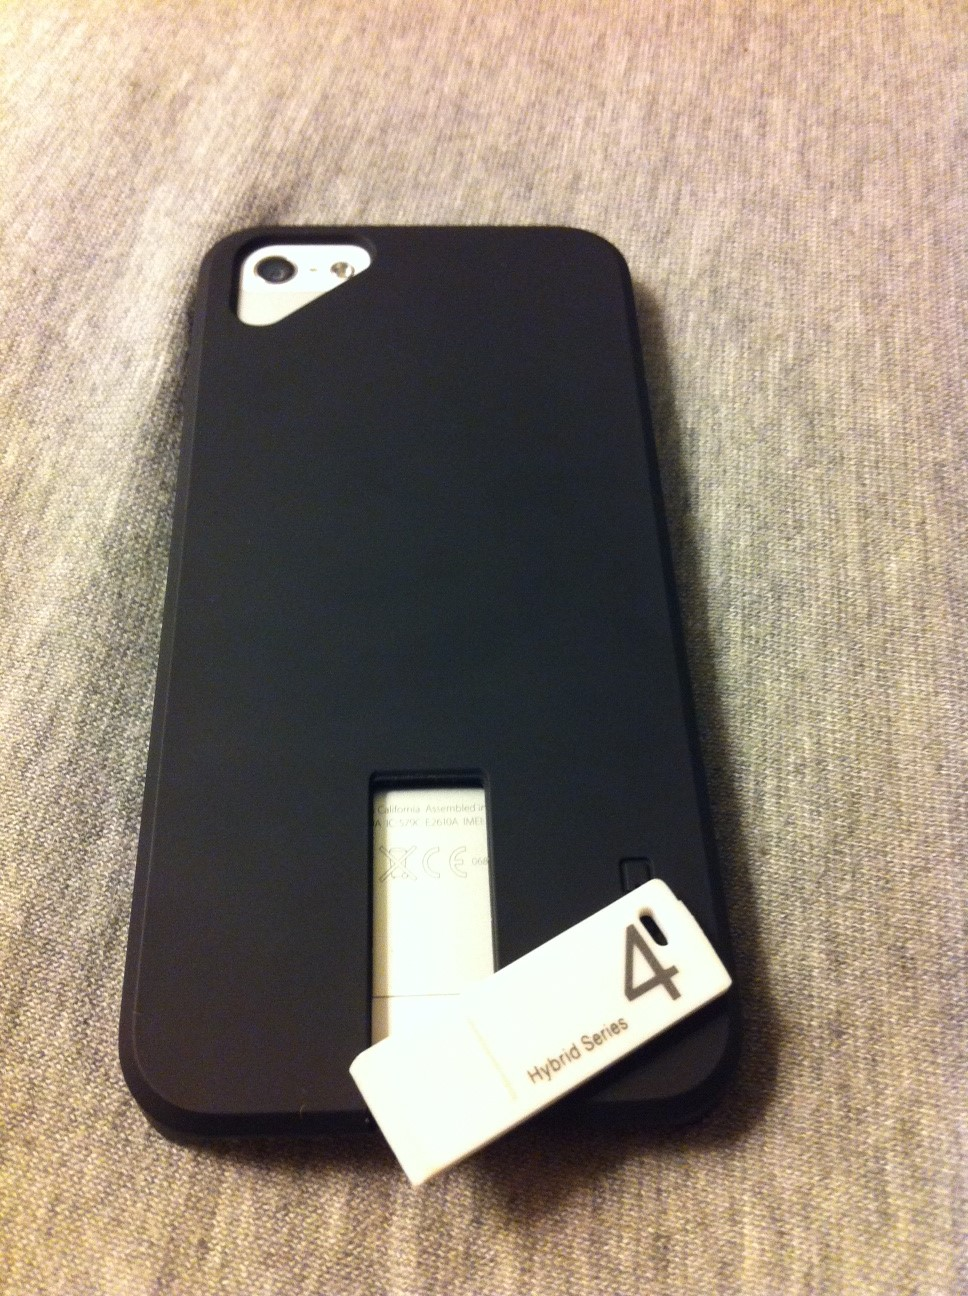 coque iphone 5 cle usb - Test : Ego, la coque iPhone 5 Clé USB